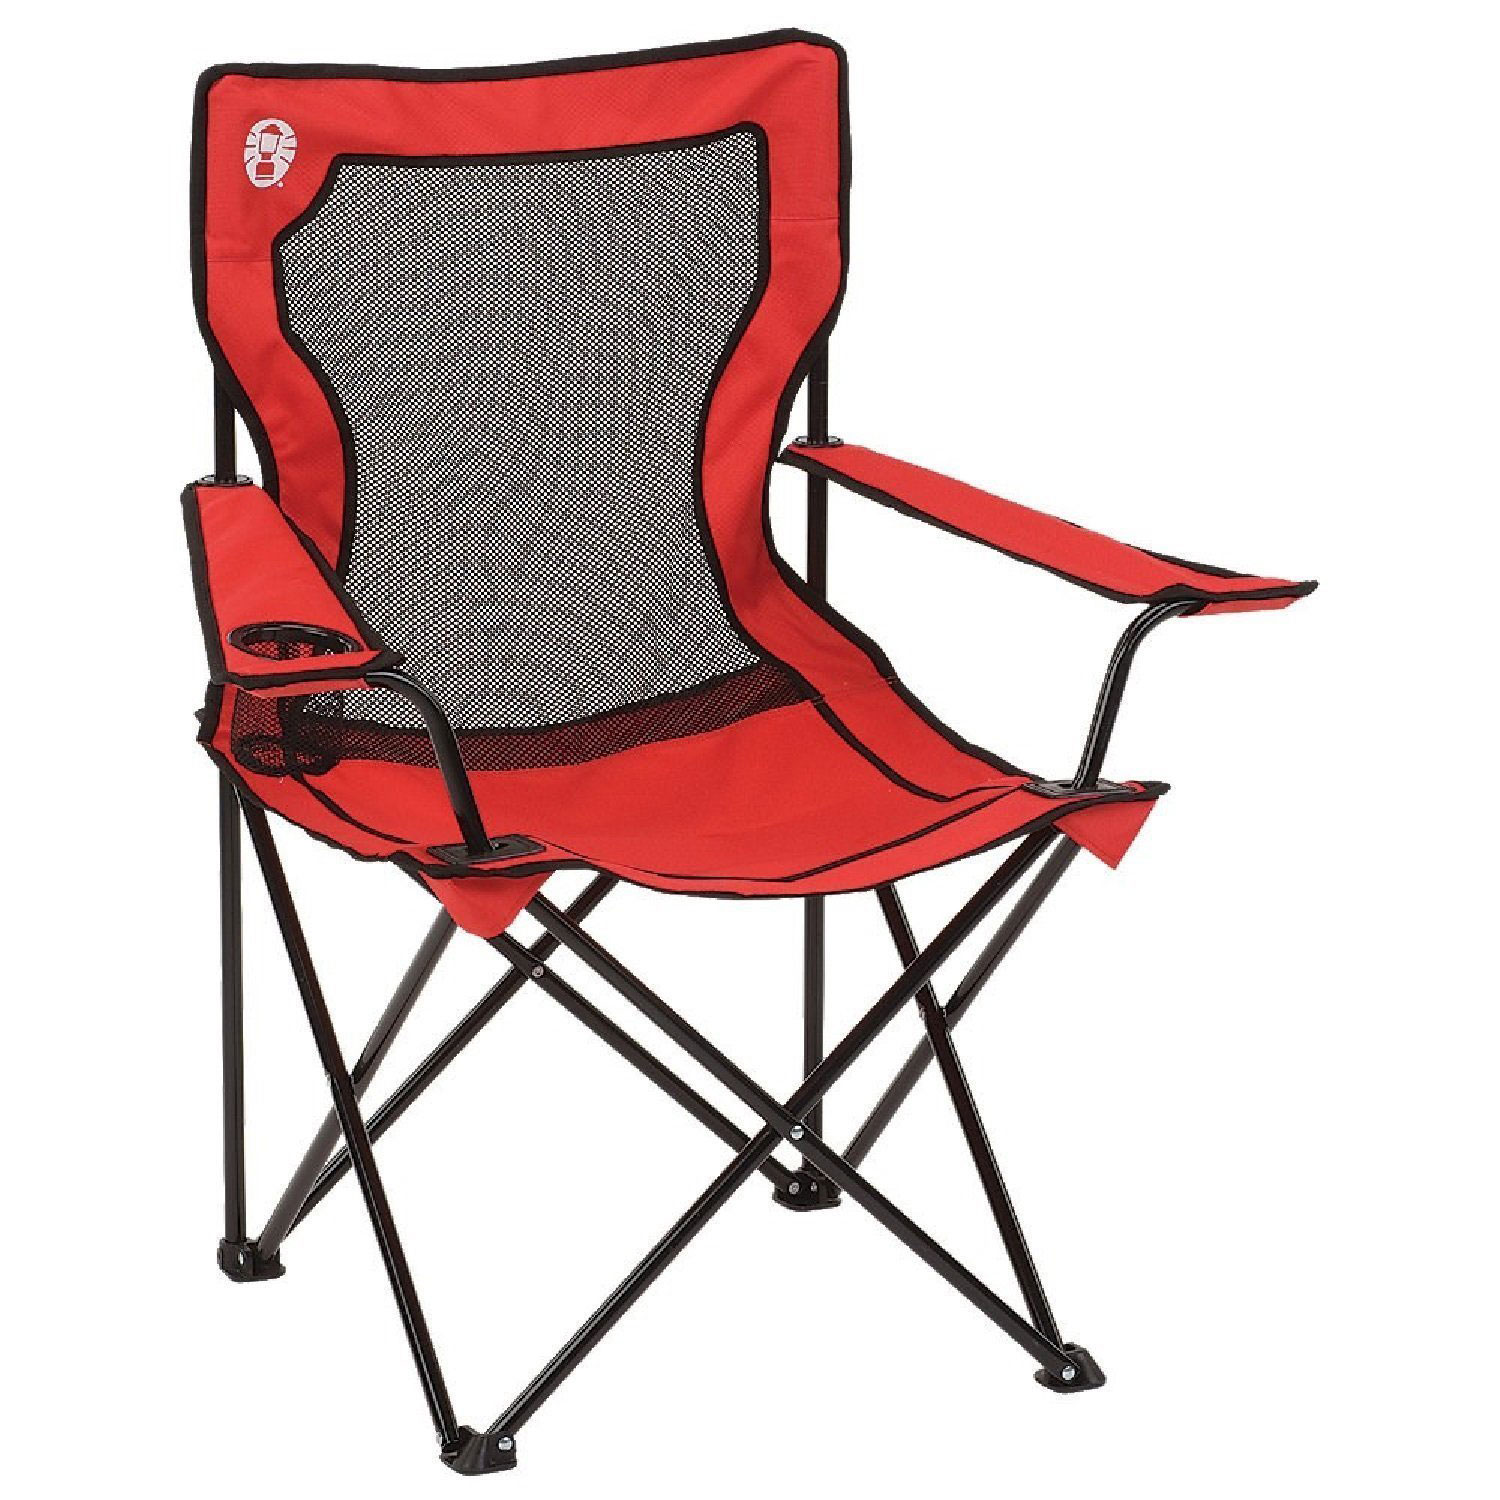 Coleman Broadband Camping Chair With Carrying Bag